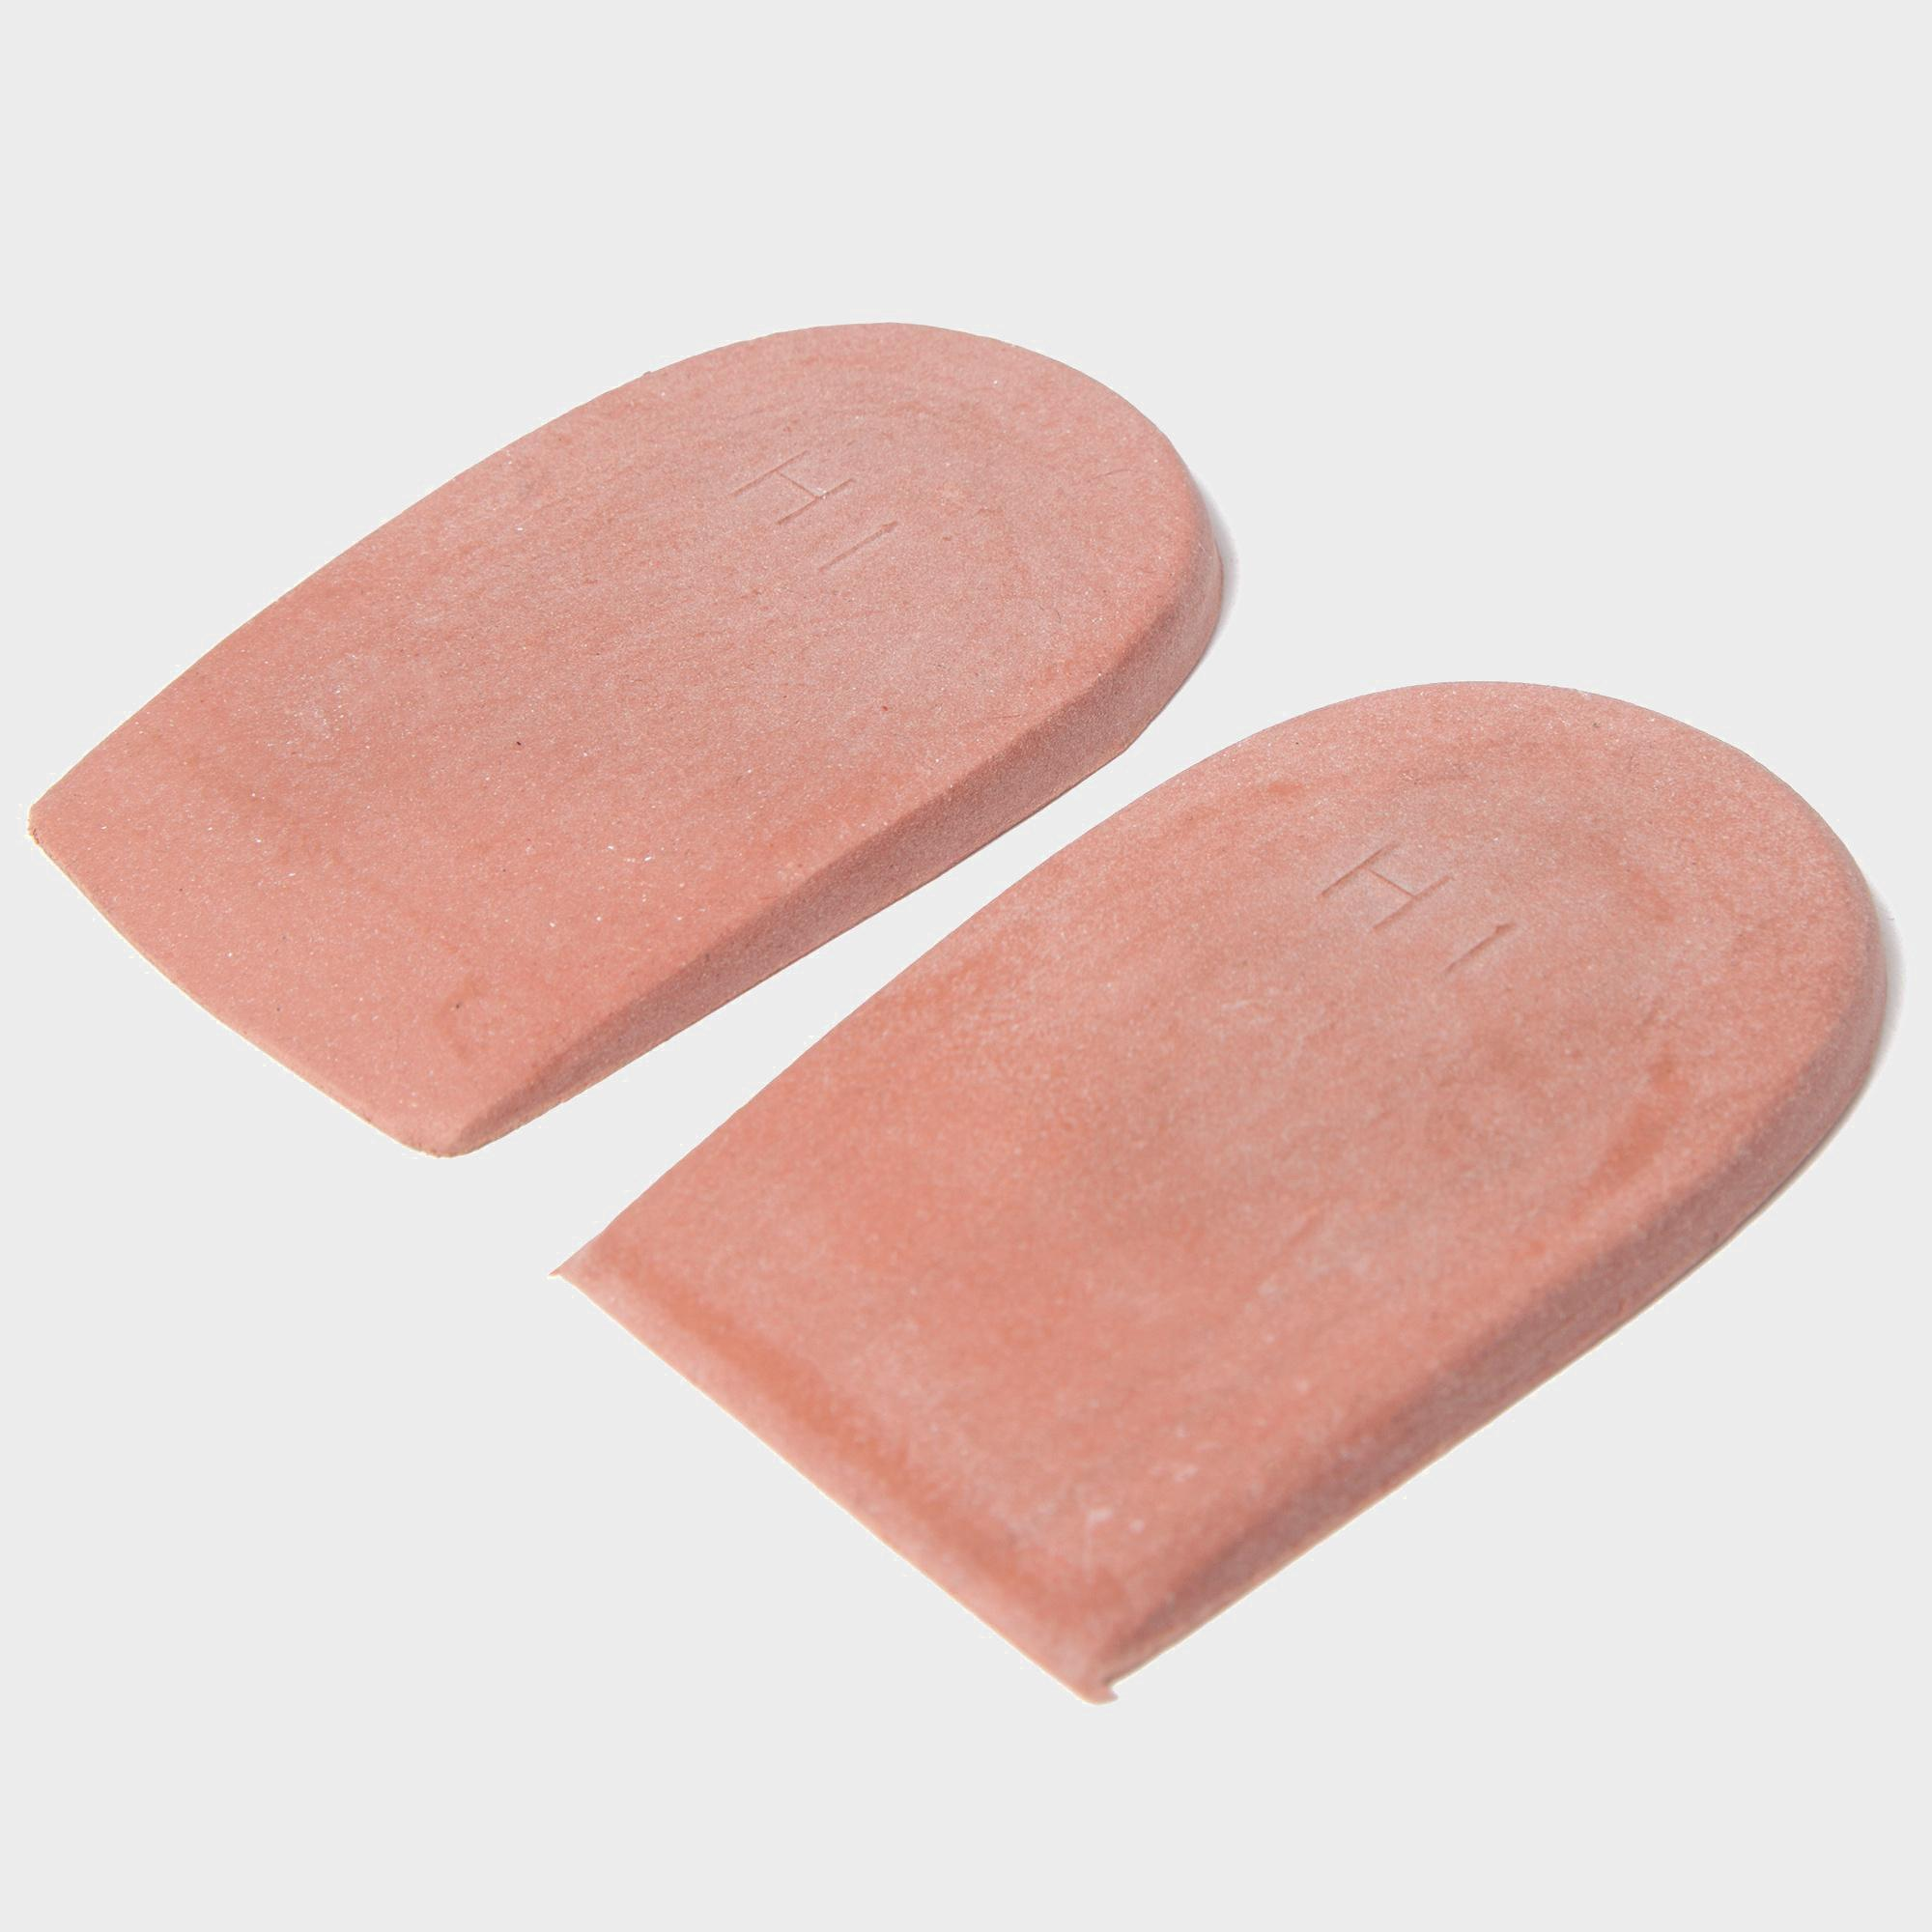 Anatom Anatom Heel Lifts - Assorted, Assorted